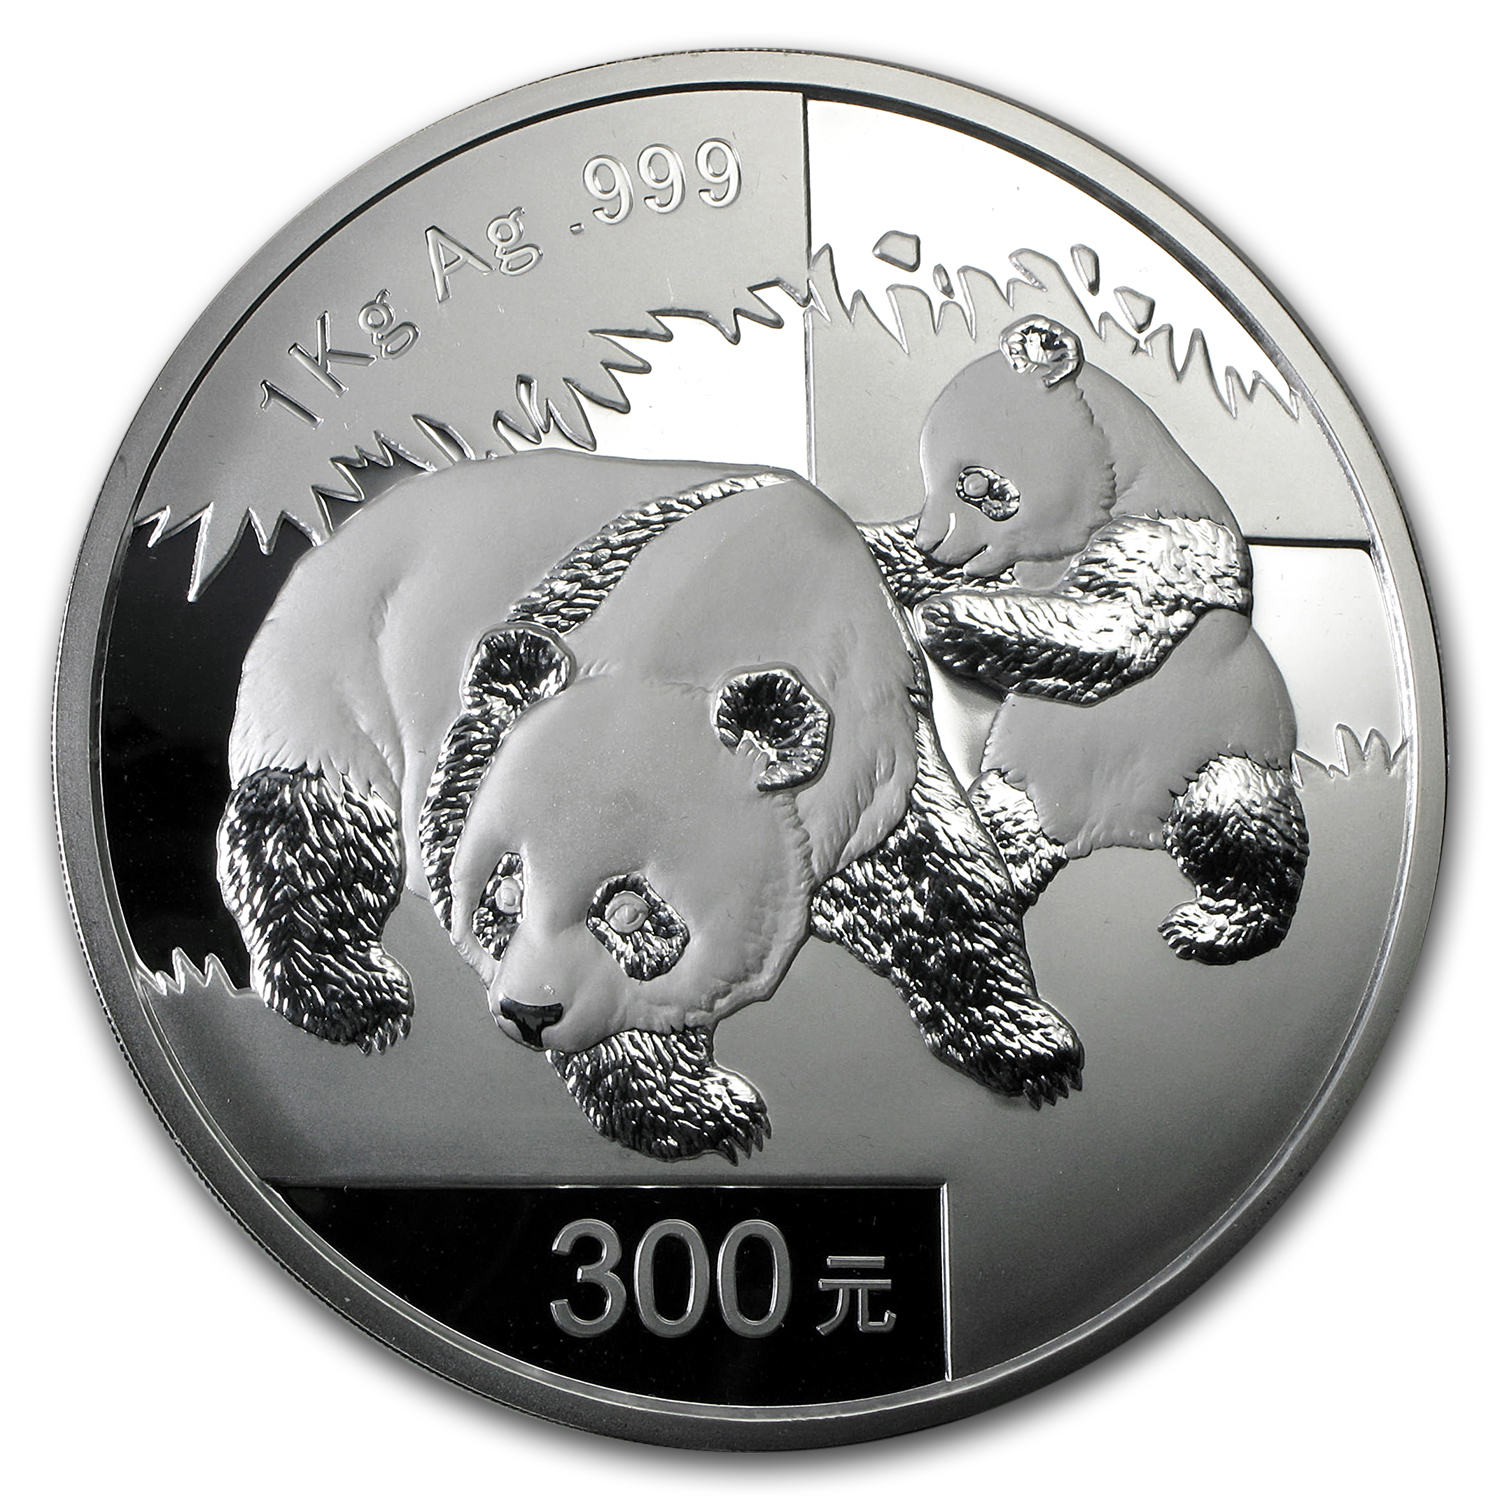 2008 China 1 kilo Silver Panda Proof (w/Box & COA)